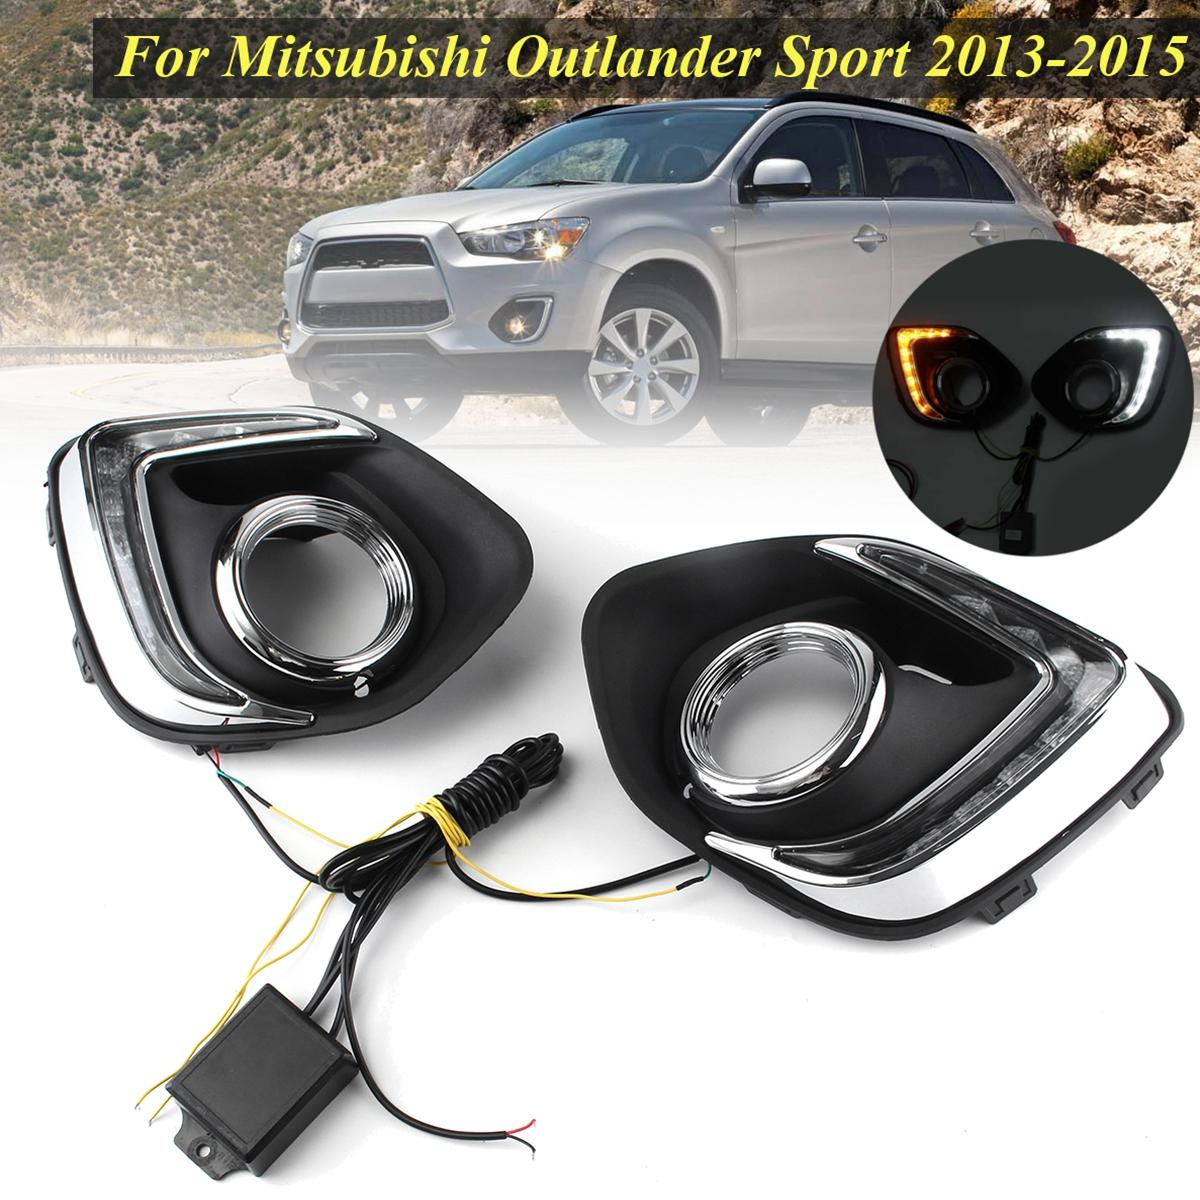 For Mitsubishi Asx Outlander Sport 2013 2015 Led Drl Running Lights Warning Light Daytime Daylight 12v Lamp Car Styling Drls Day From